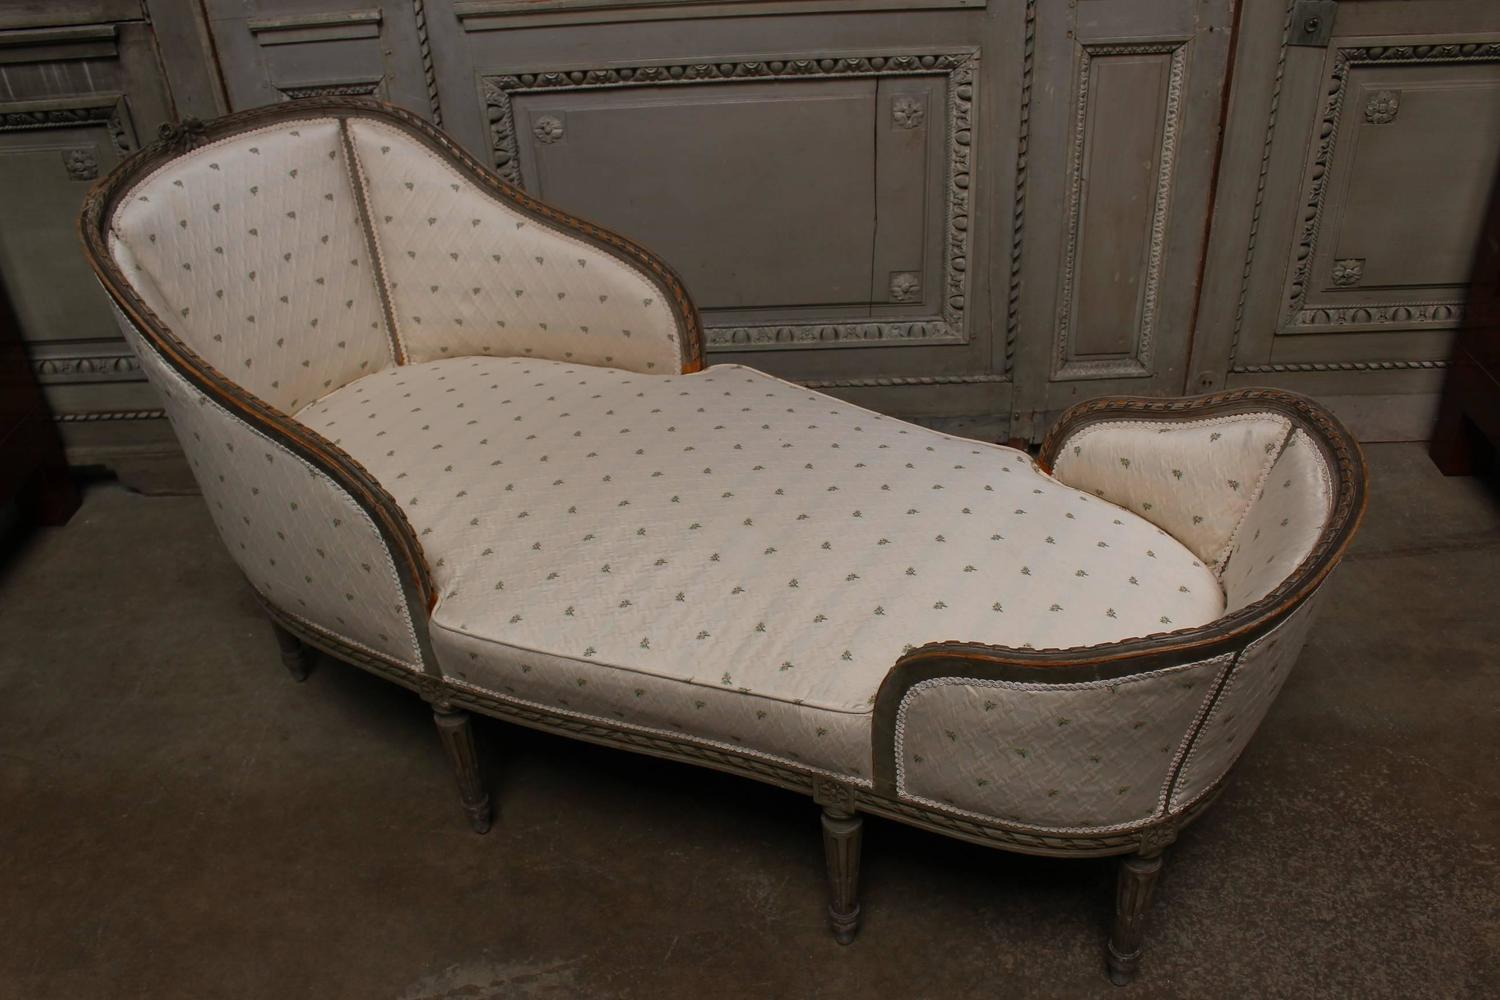 french louis xvi style petit chaise longue with a painted